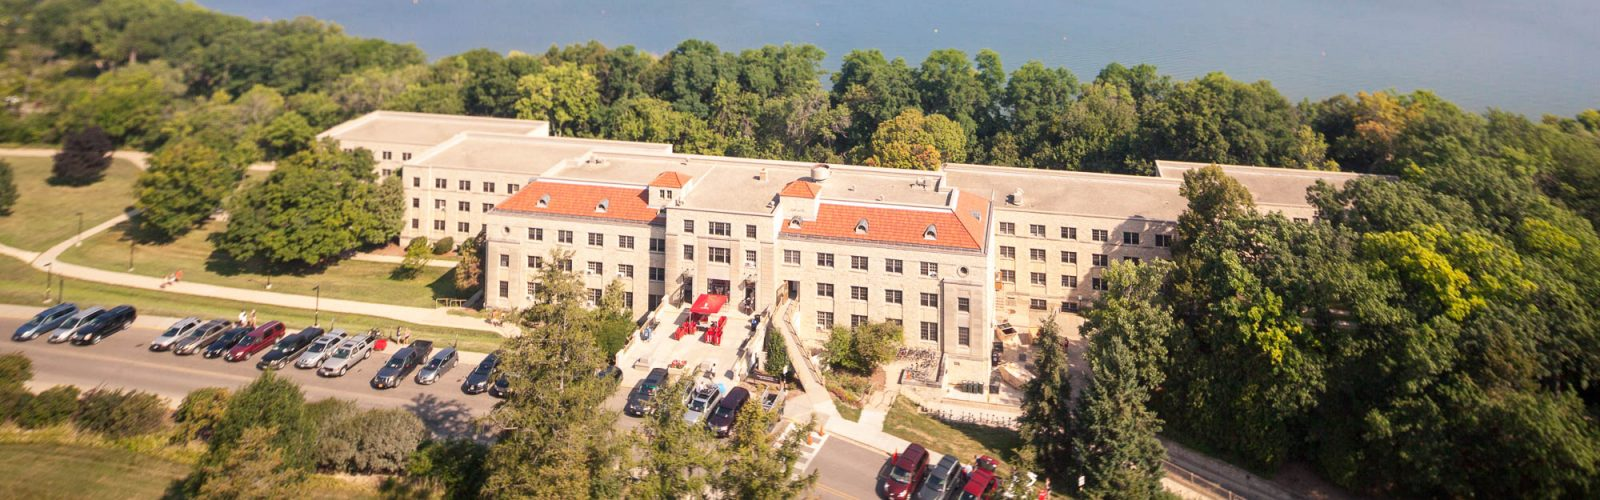 Vehicles line-up outside Waters Residence Hall o to unload during move-in